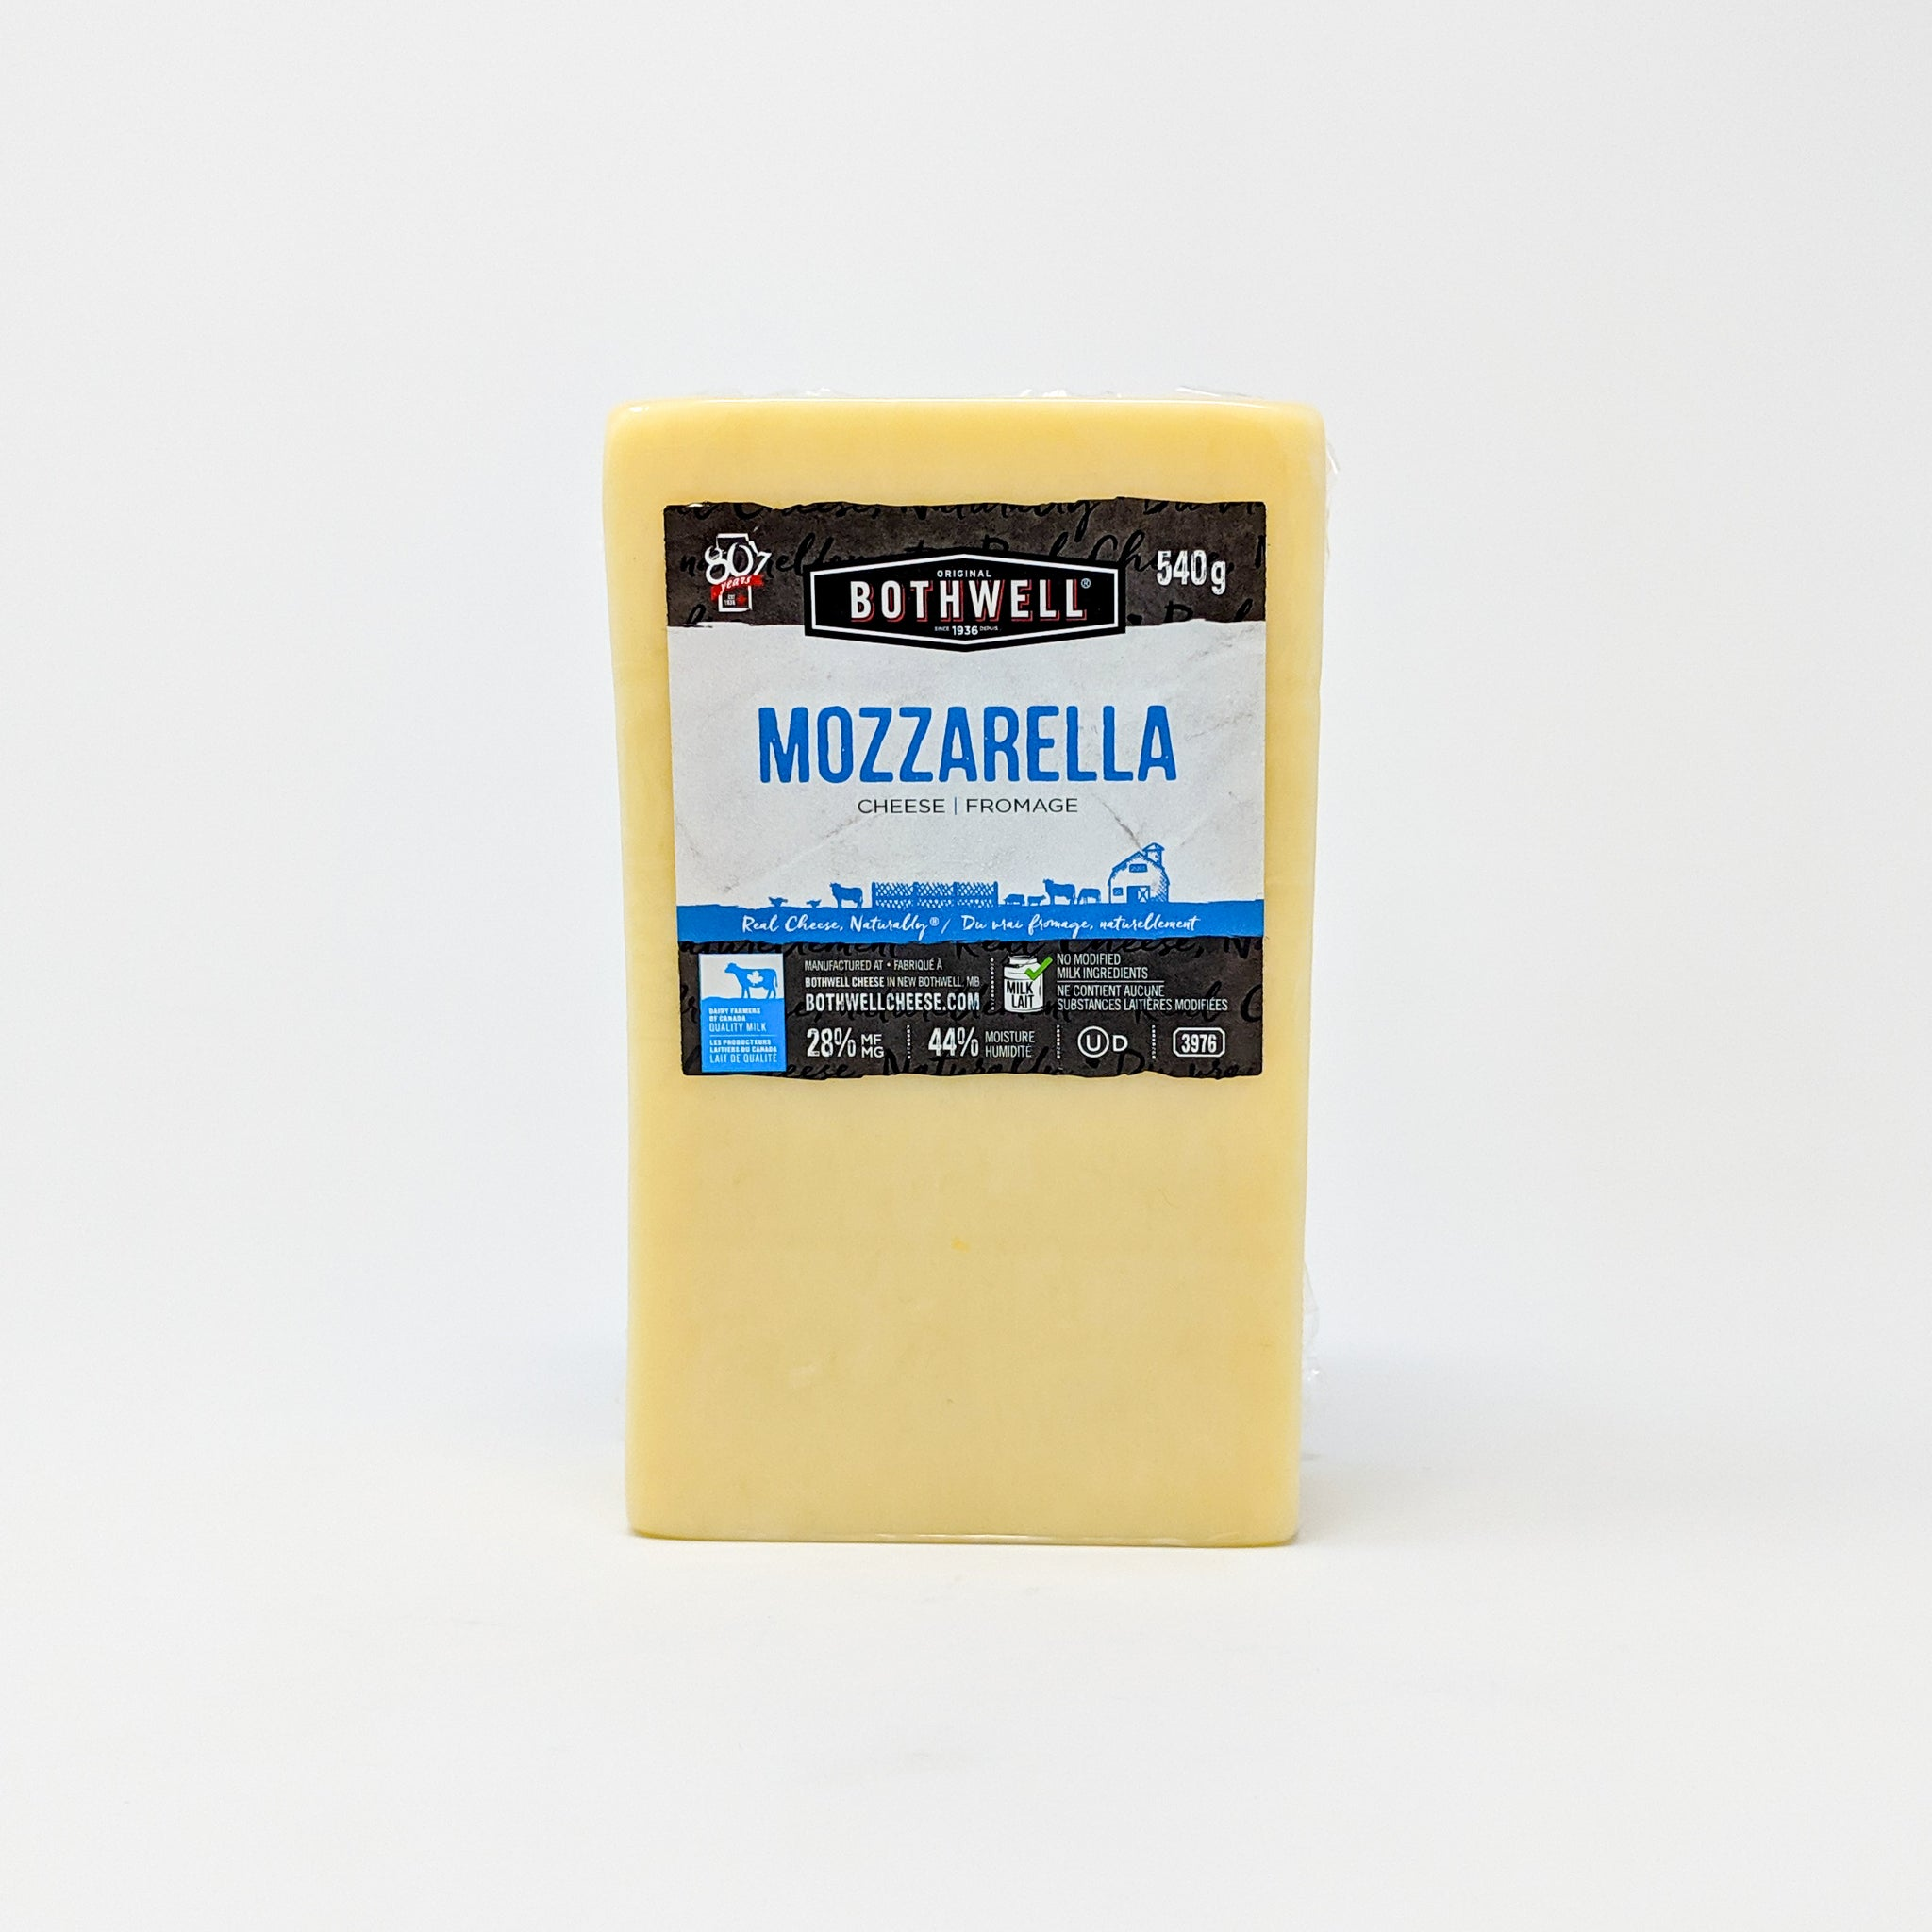 Mozzarella 540g - Bothwell Cheese